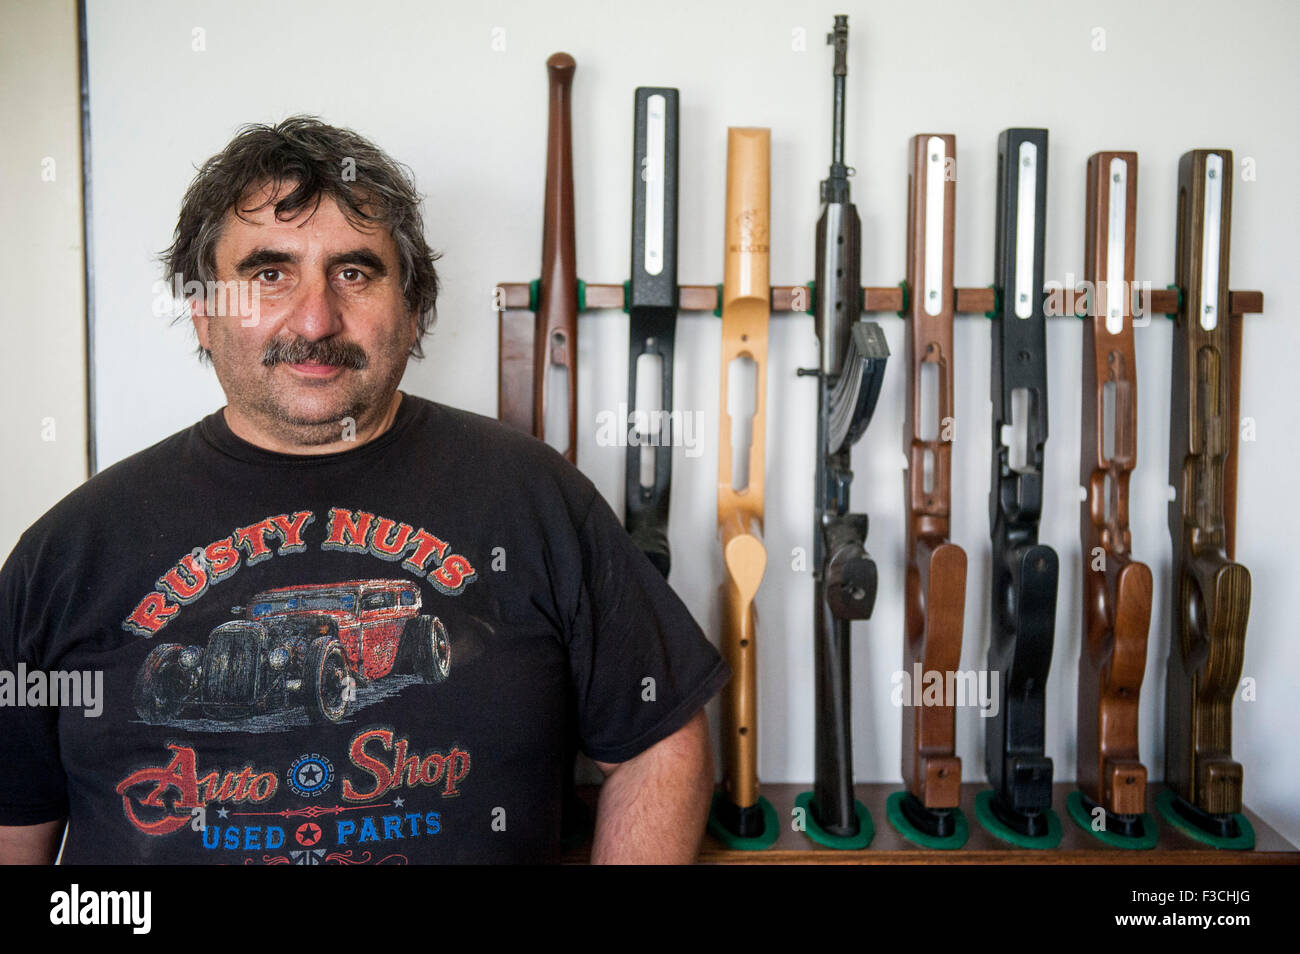 Czech company Klinsky exports wooden riffle stocks and pistol grips to all continents except Antarctica, producing - Stock Image